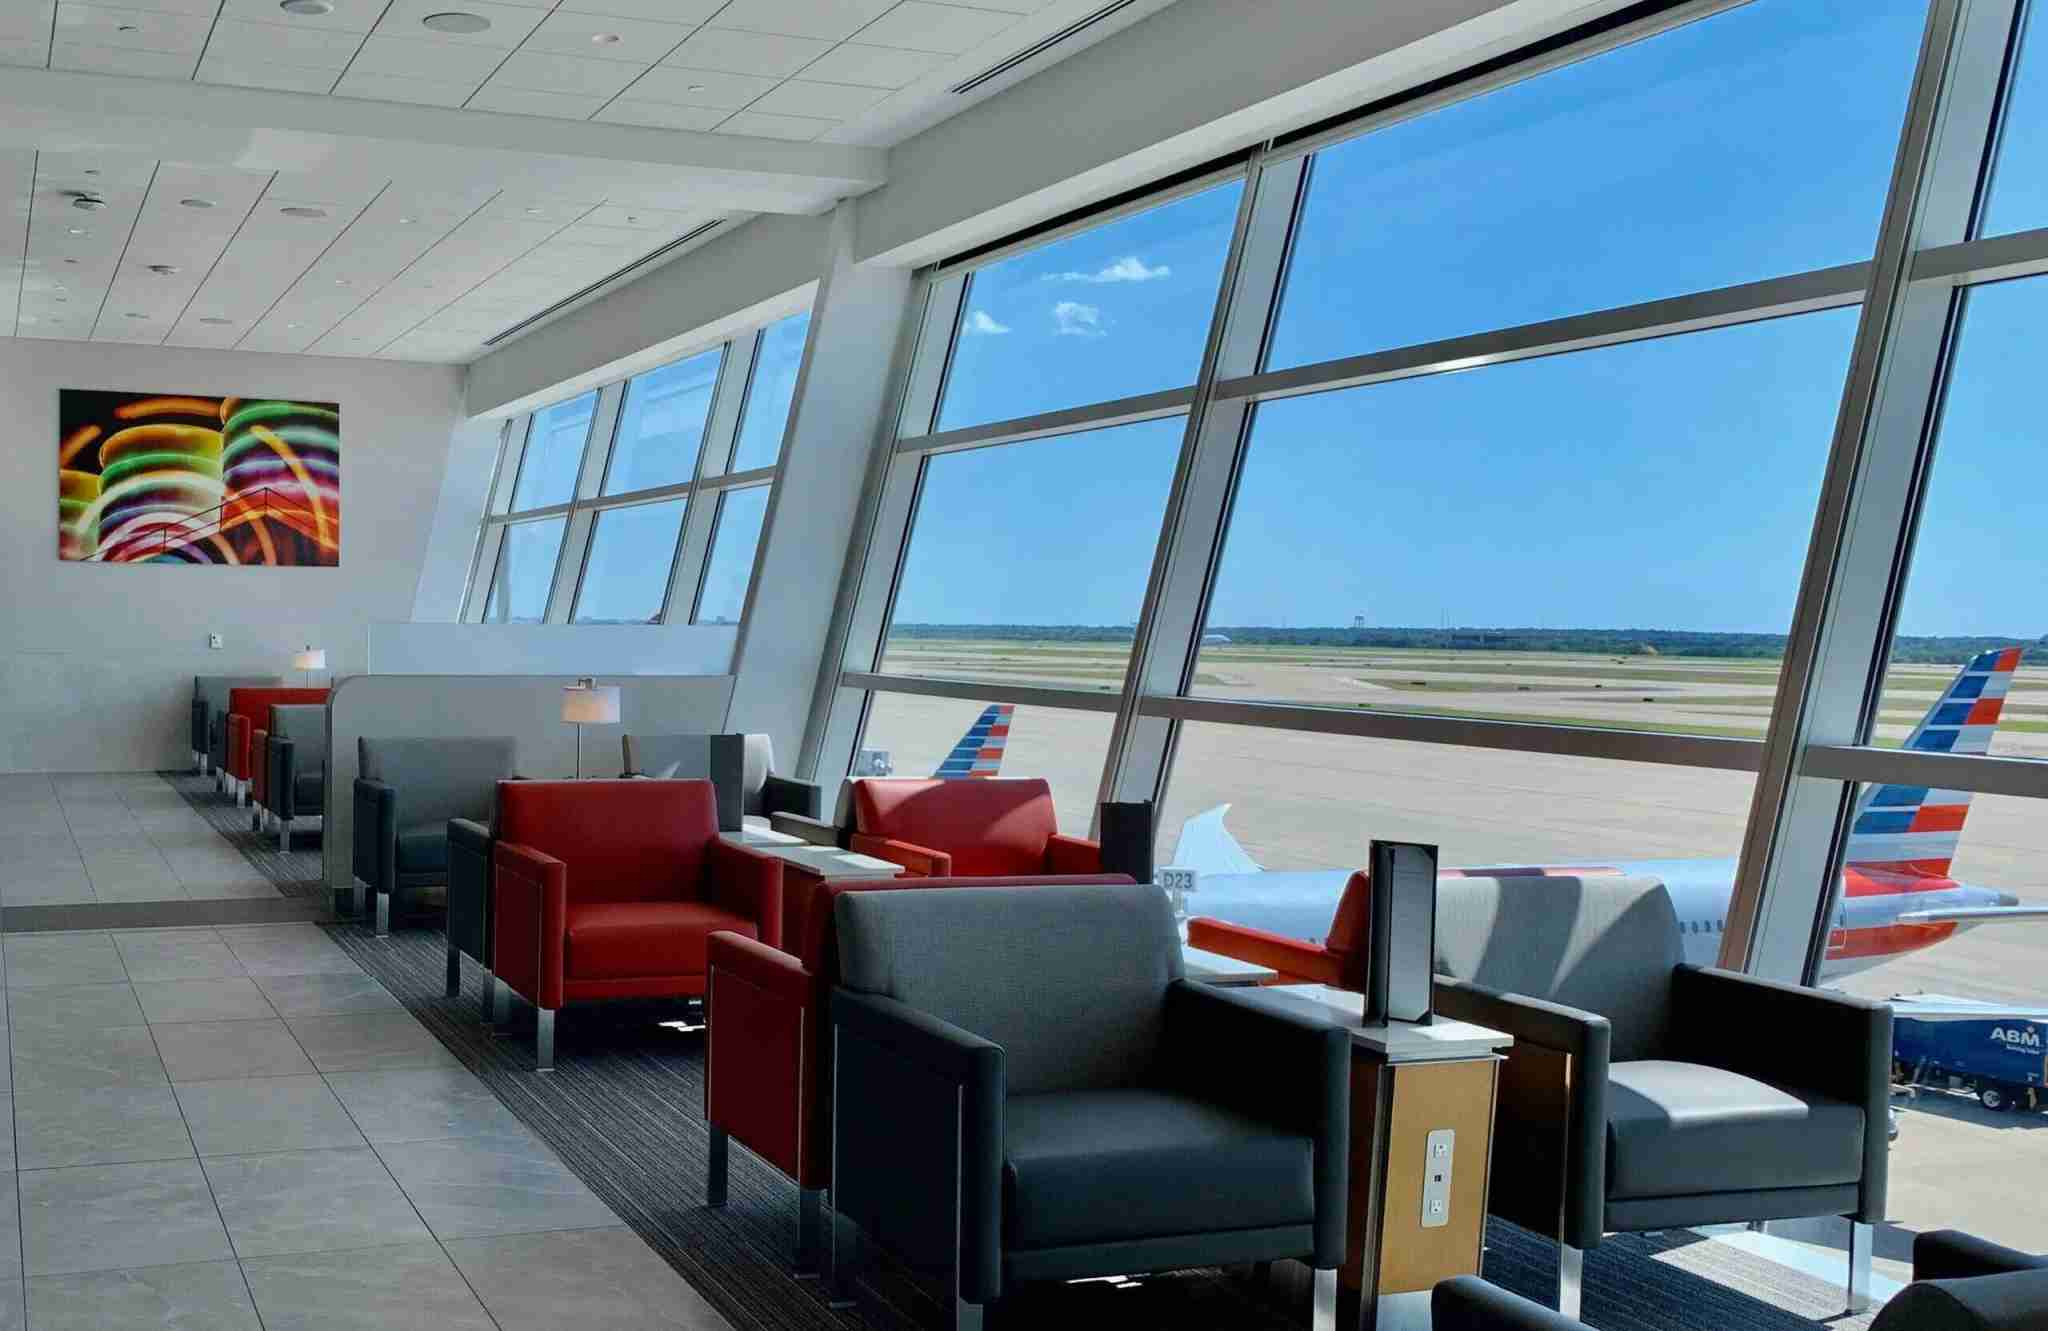 The American Airlines Admirals Club at Dallas/Fort Worth International Airport. (Photo by Chris Dong/The Points Guy)